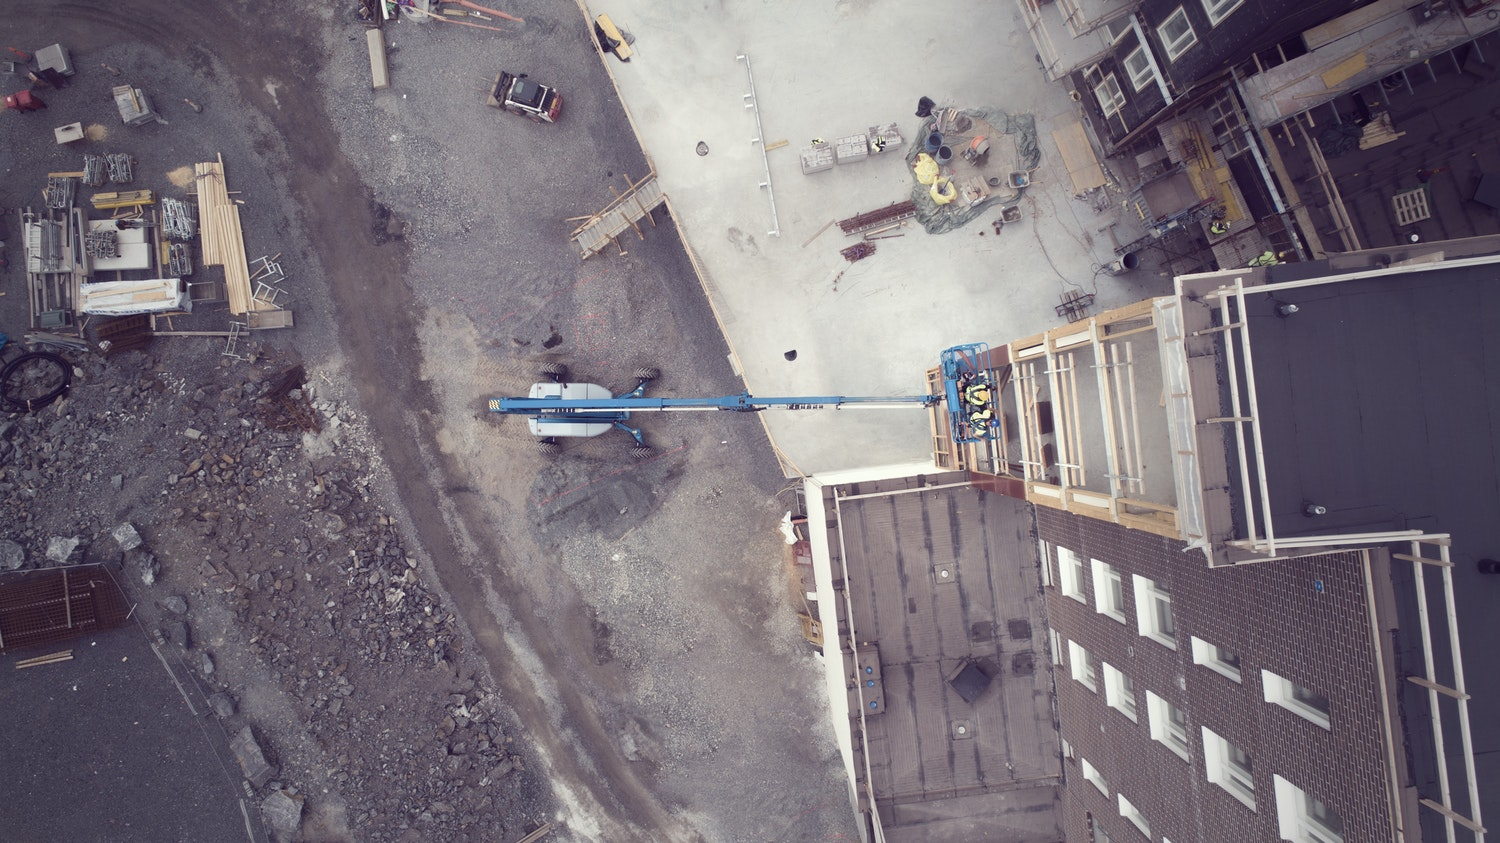 Bird's view from a construction site.